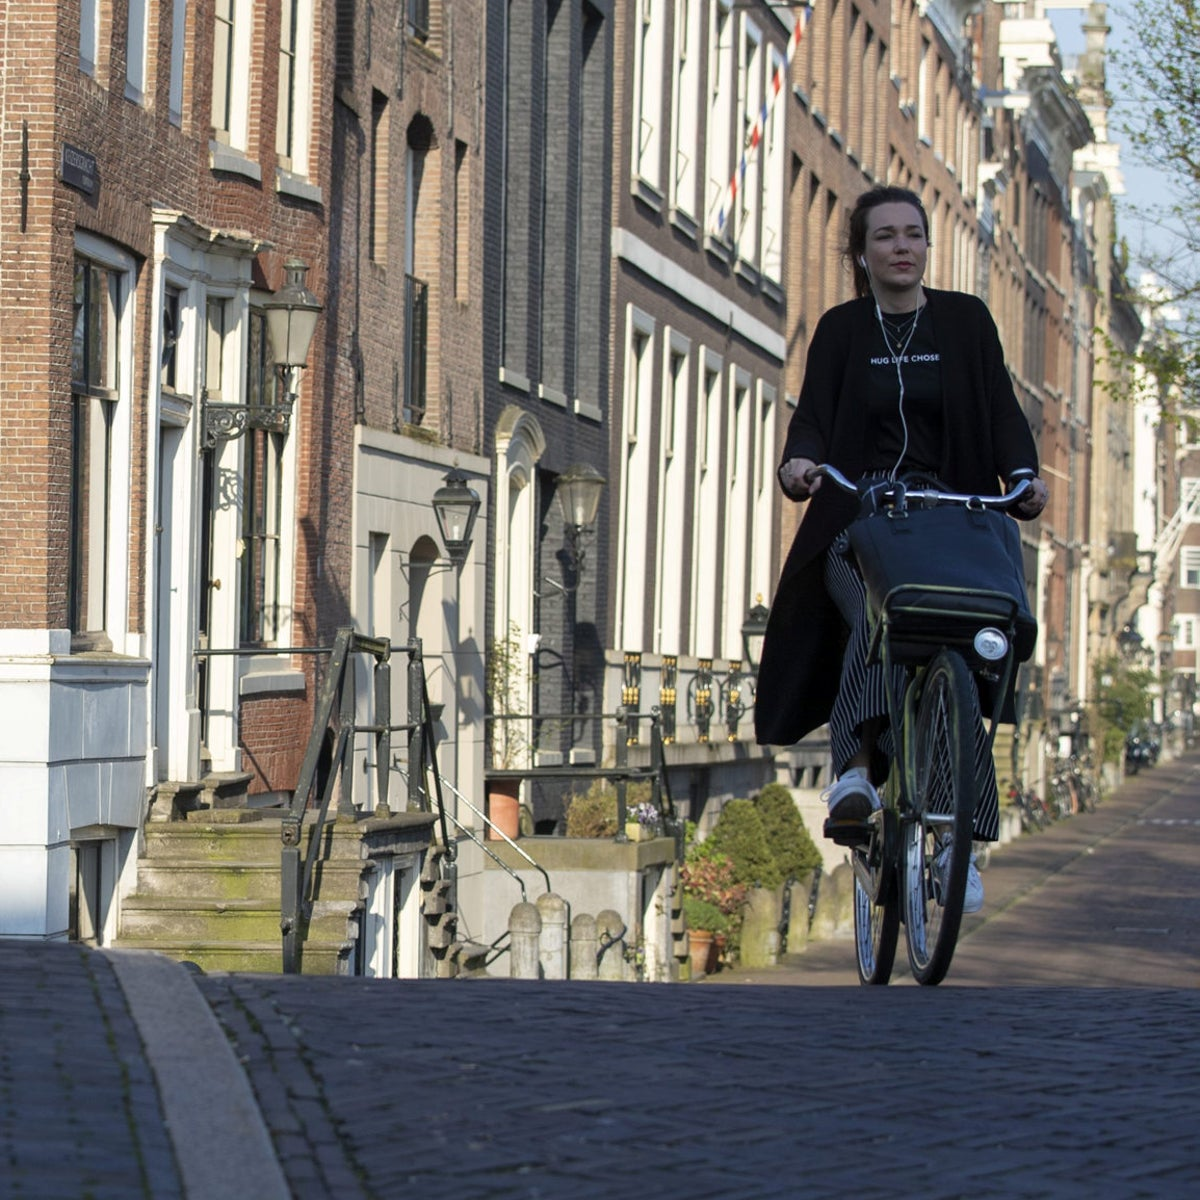 A cyclist travels towards a bridge on the corner of Reguliersgracht and Keizersgracht in Amsterdam, Netherlands.